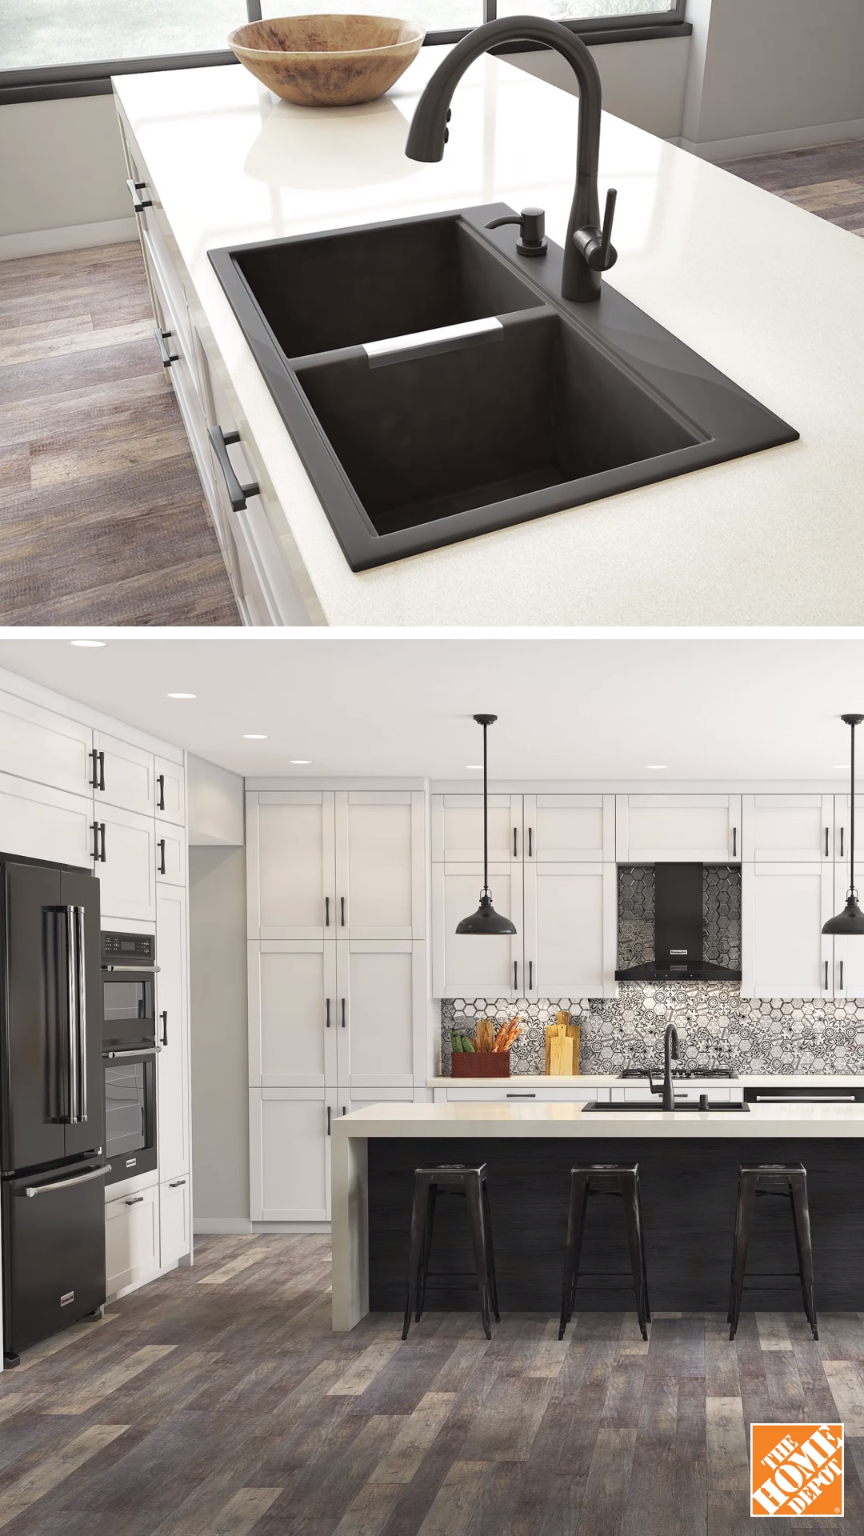 Contrast Dark Fixtures With Light Cabinets To Turn Your Kitchen Into A Bold Style Statement Learn More At Homedepot Ca Cozinhas Casas Casa Fofa